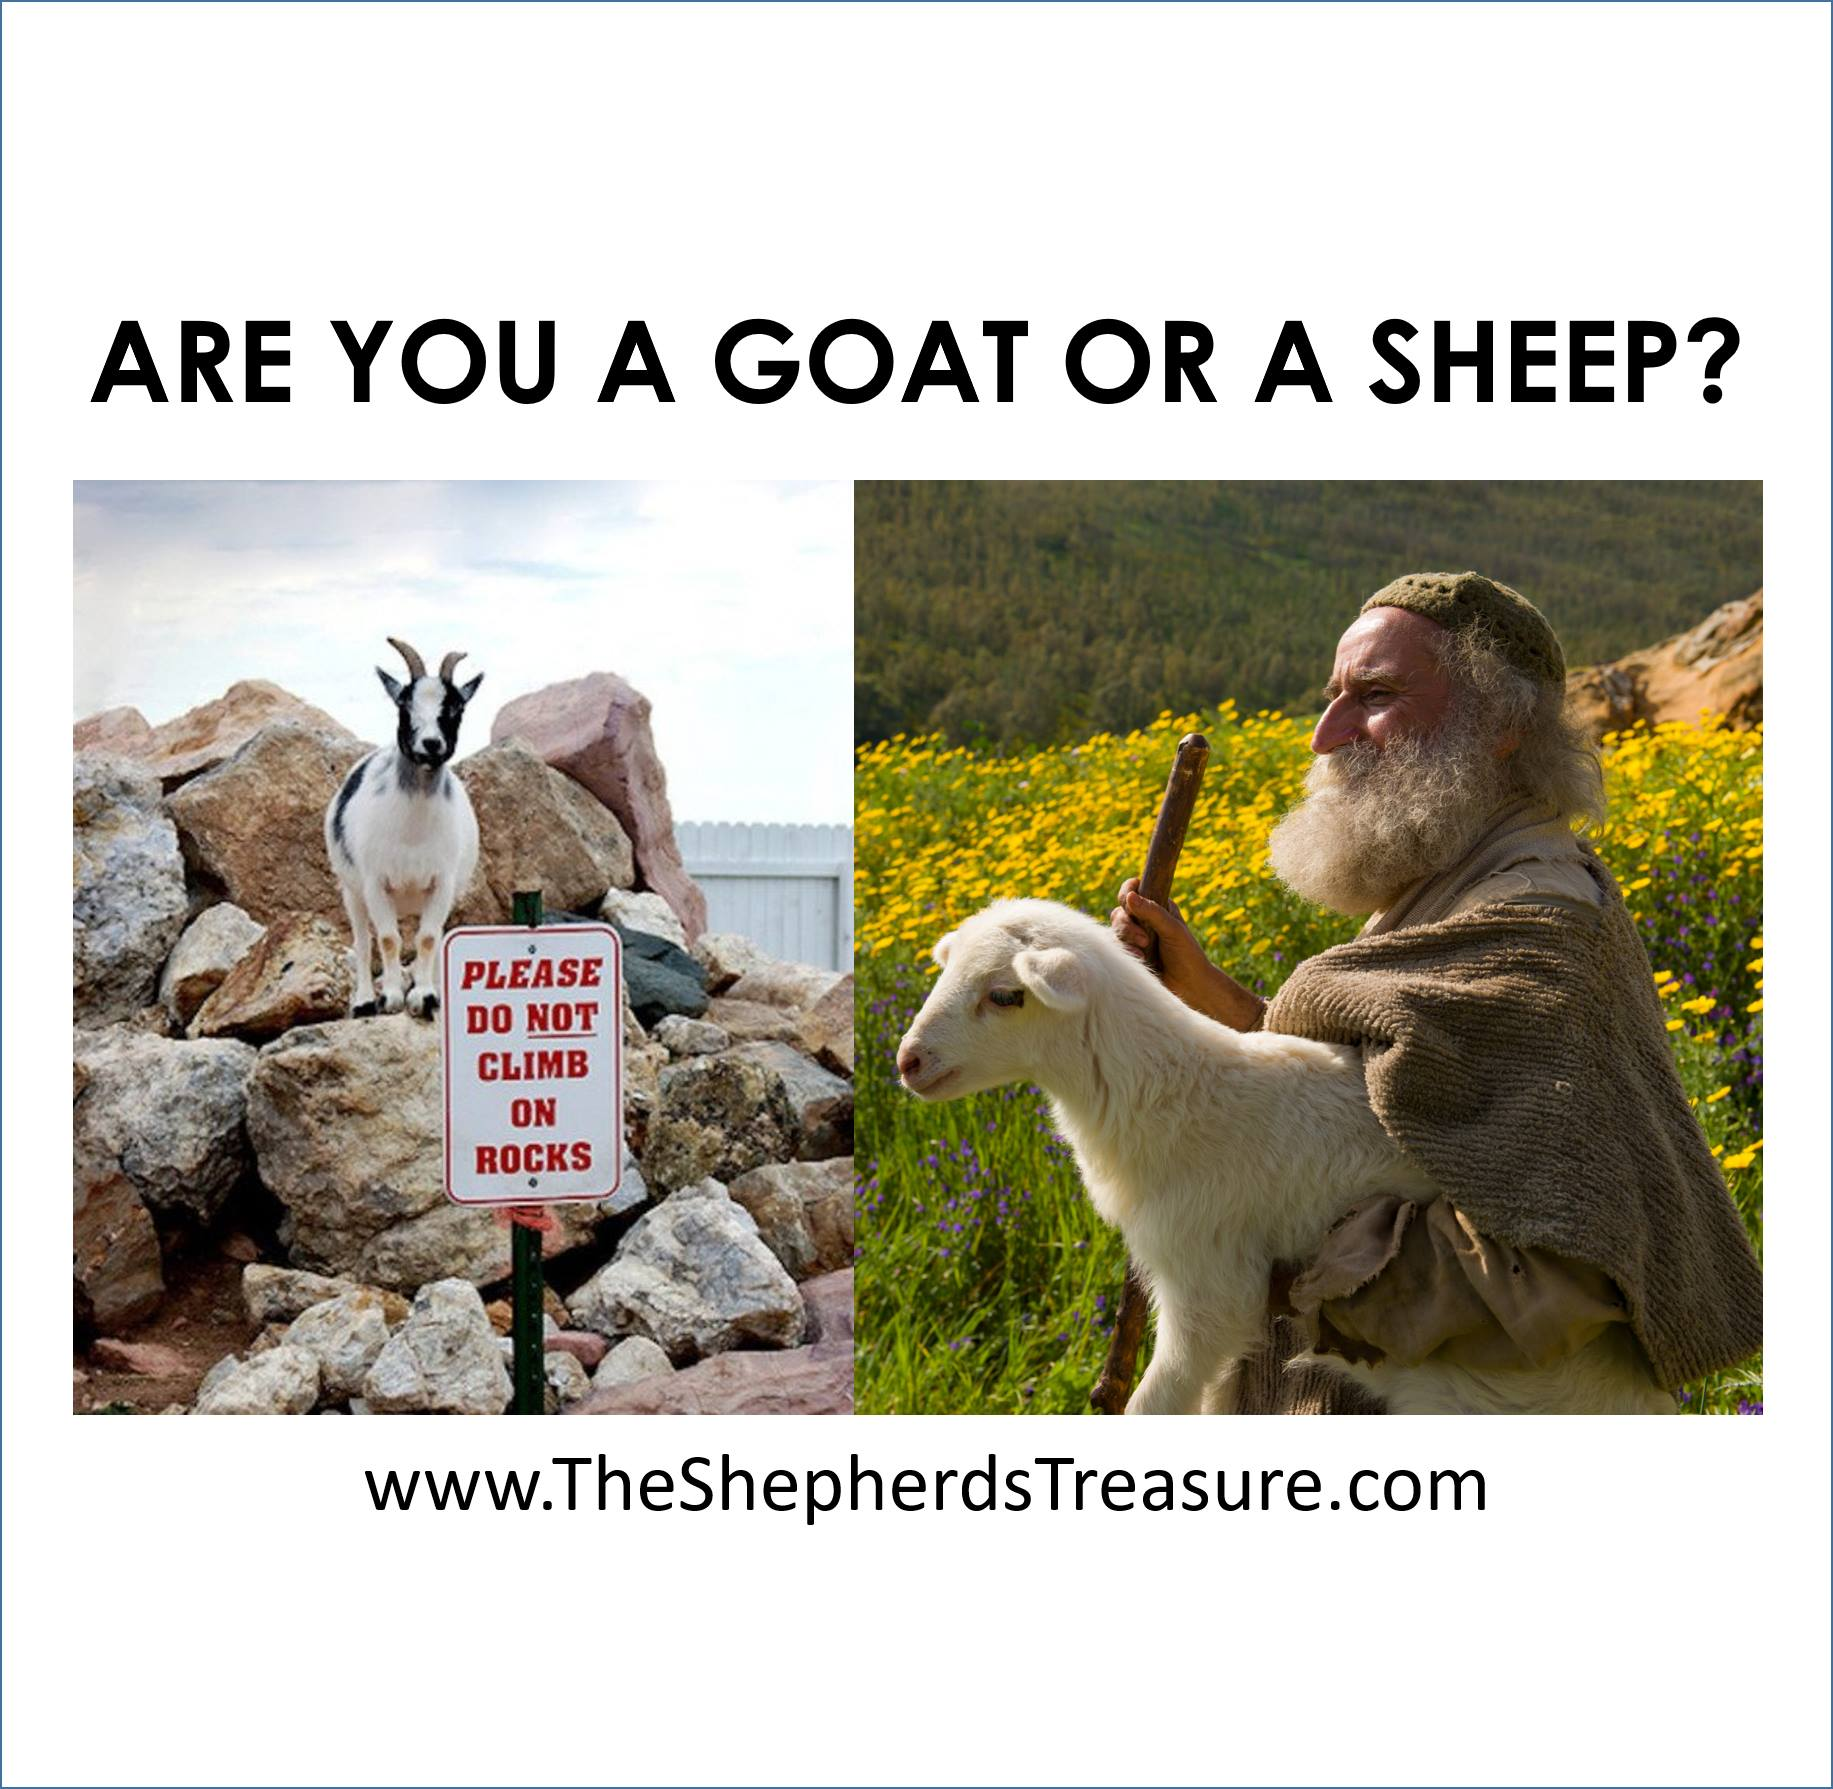 Are you a Goat or a Sheep?